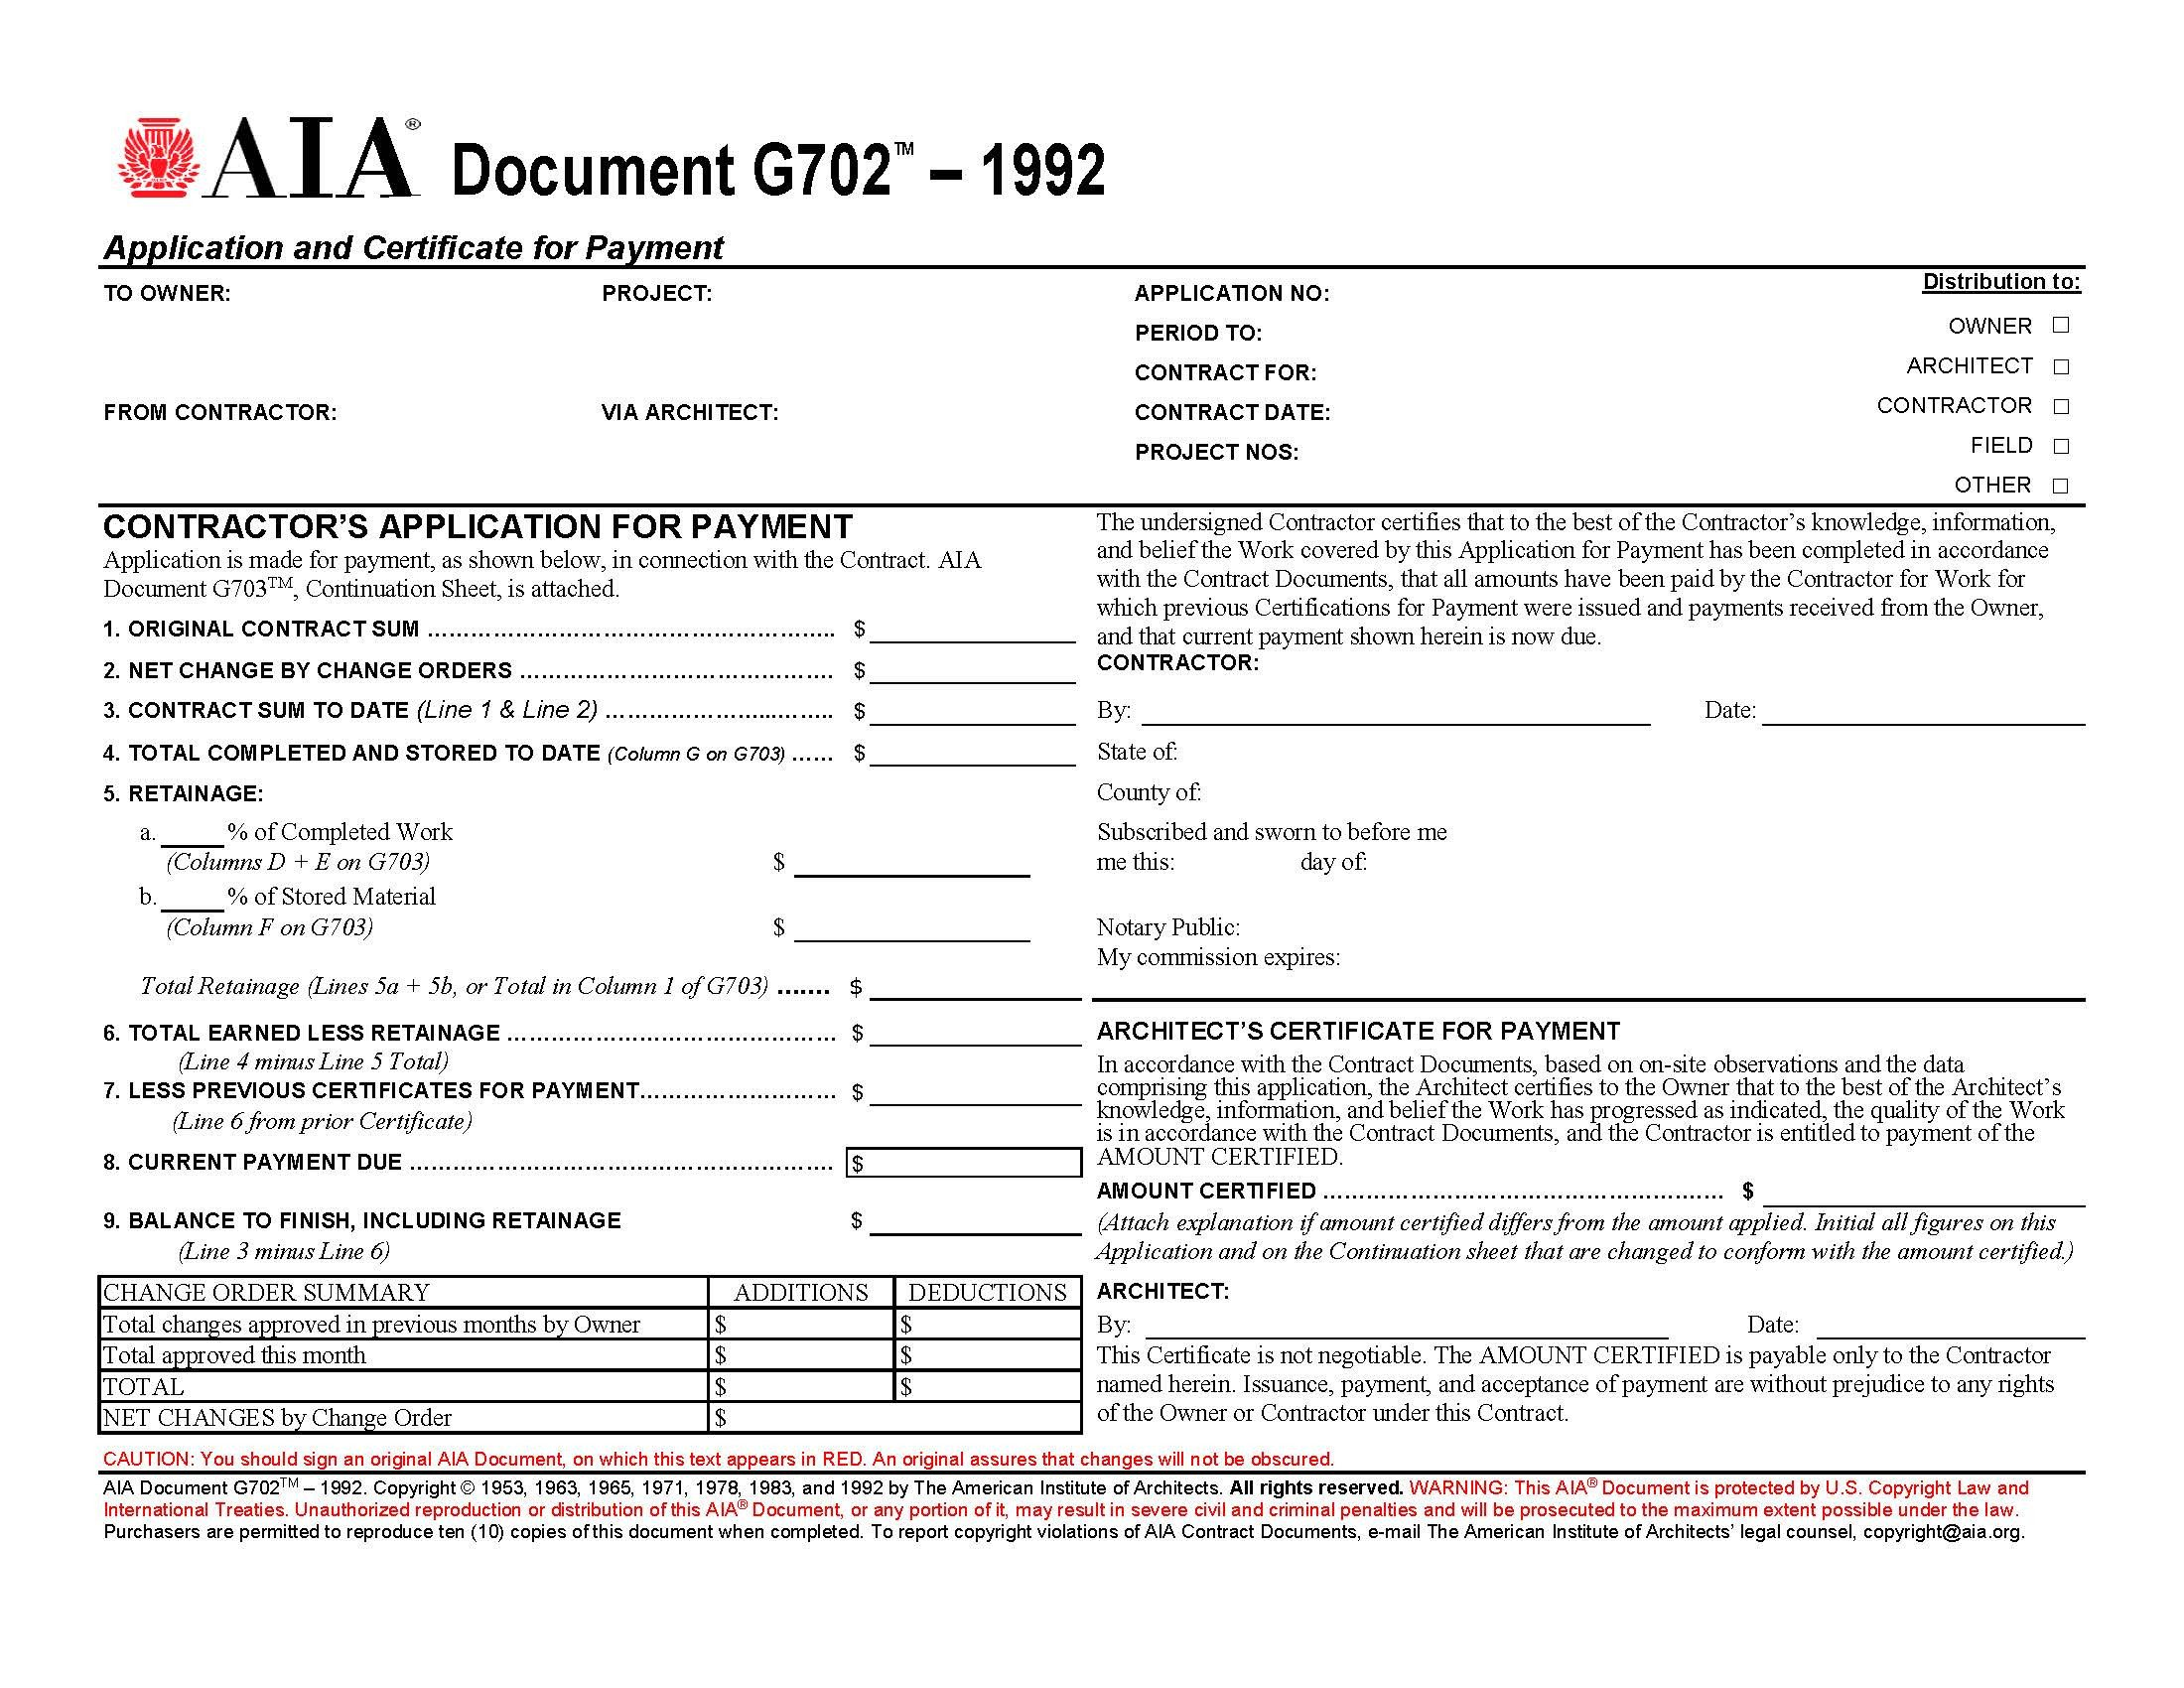 G702 form Excel Aia forms G702 & G703 Application and Certificate for Payment